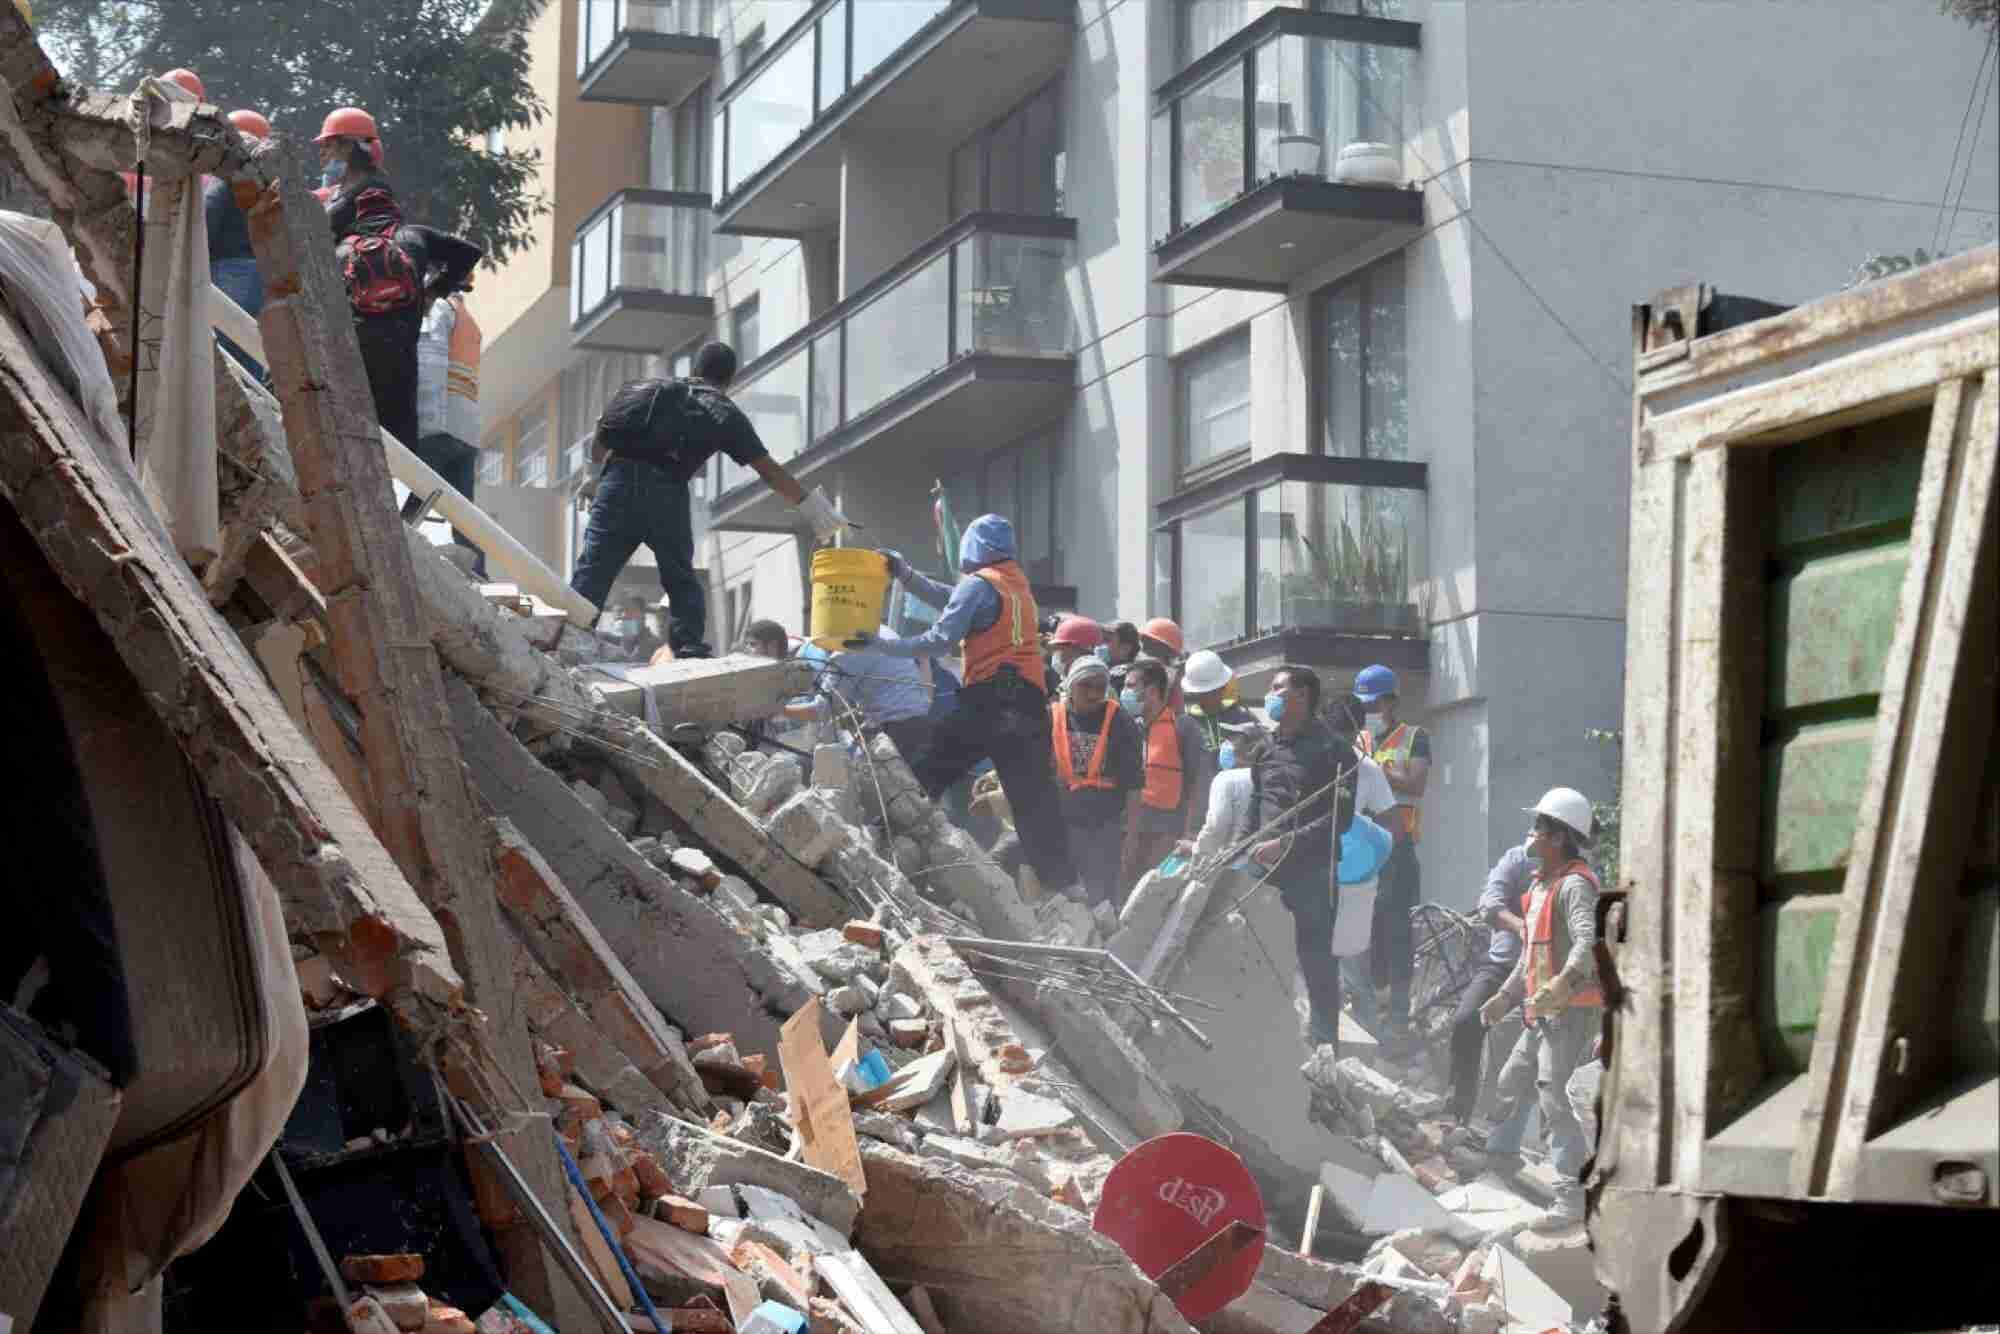 5 Ways You Can Help Mexico After the Deadly Earthquake